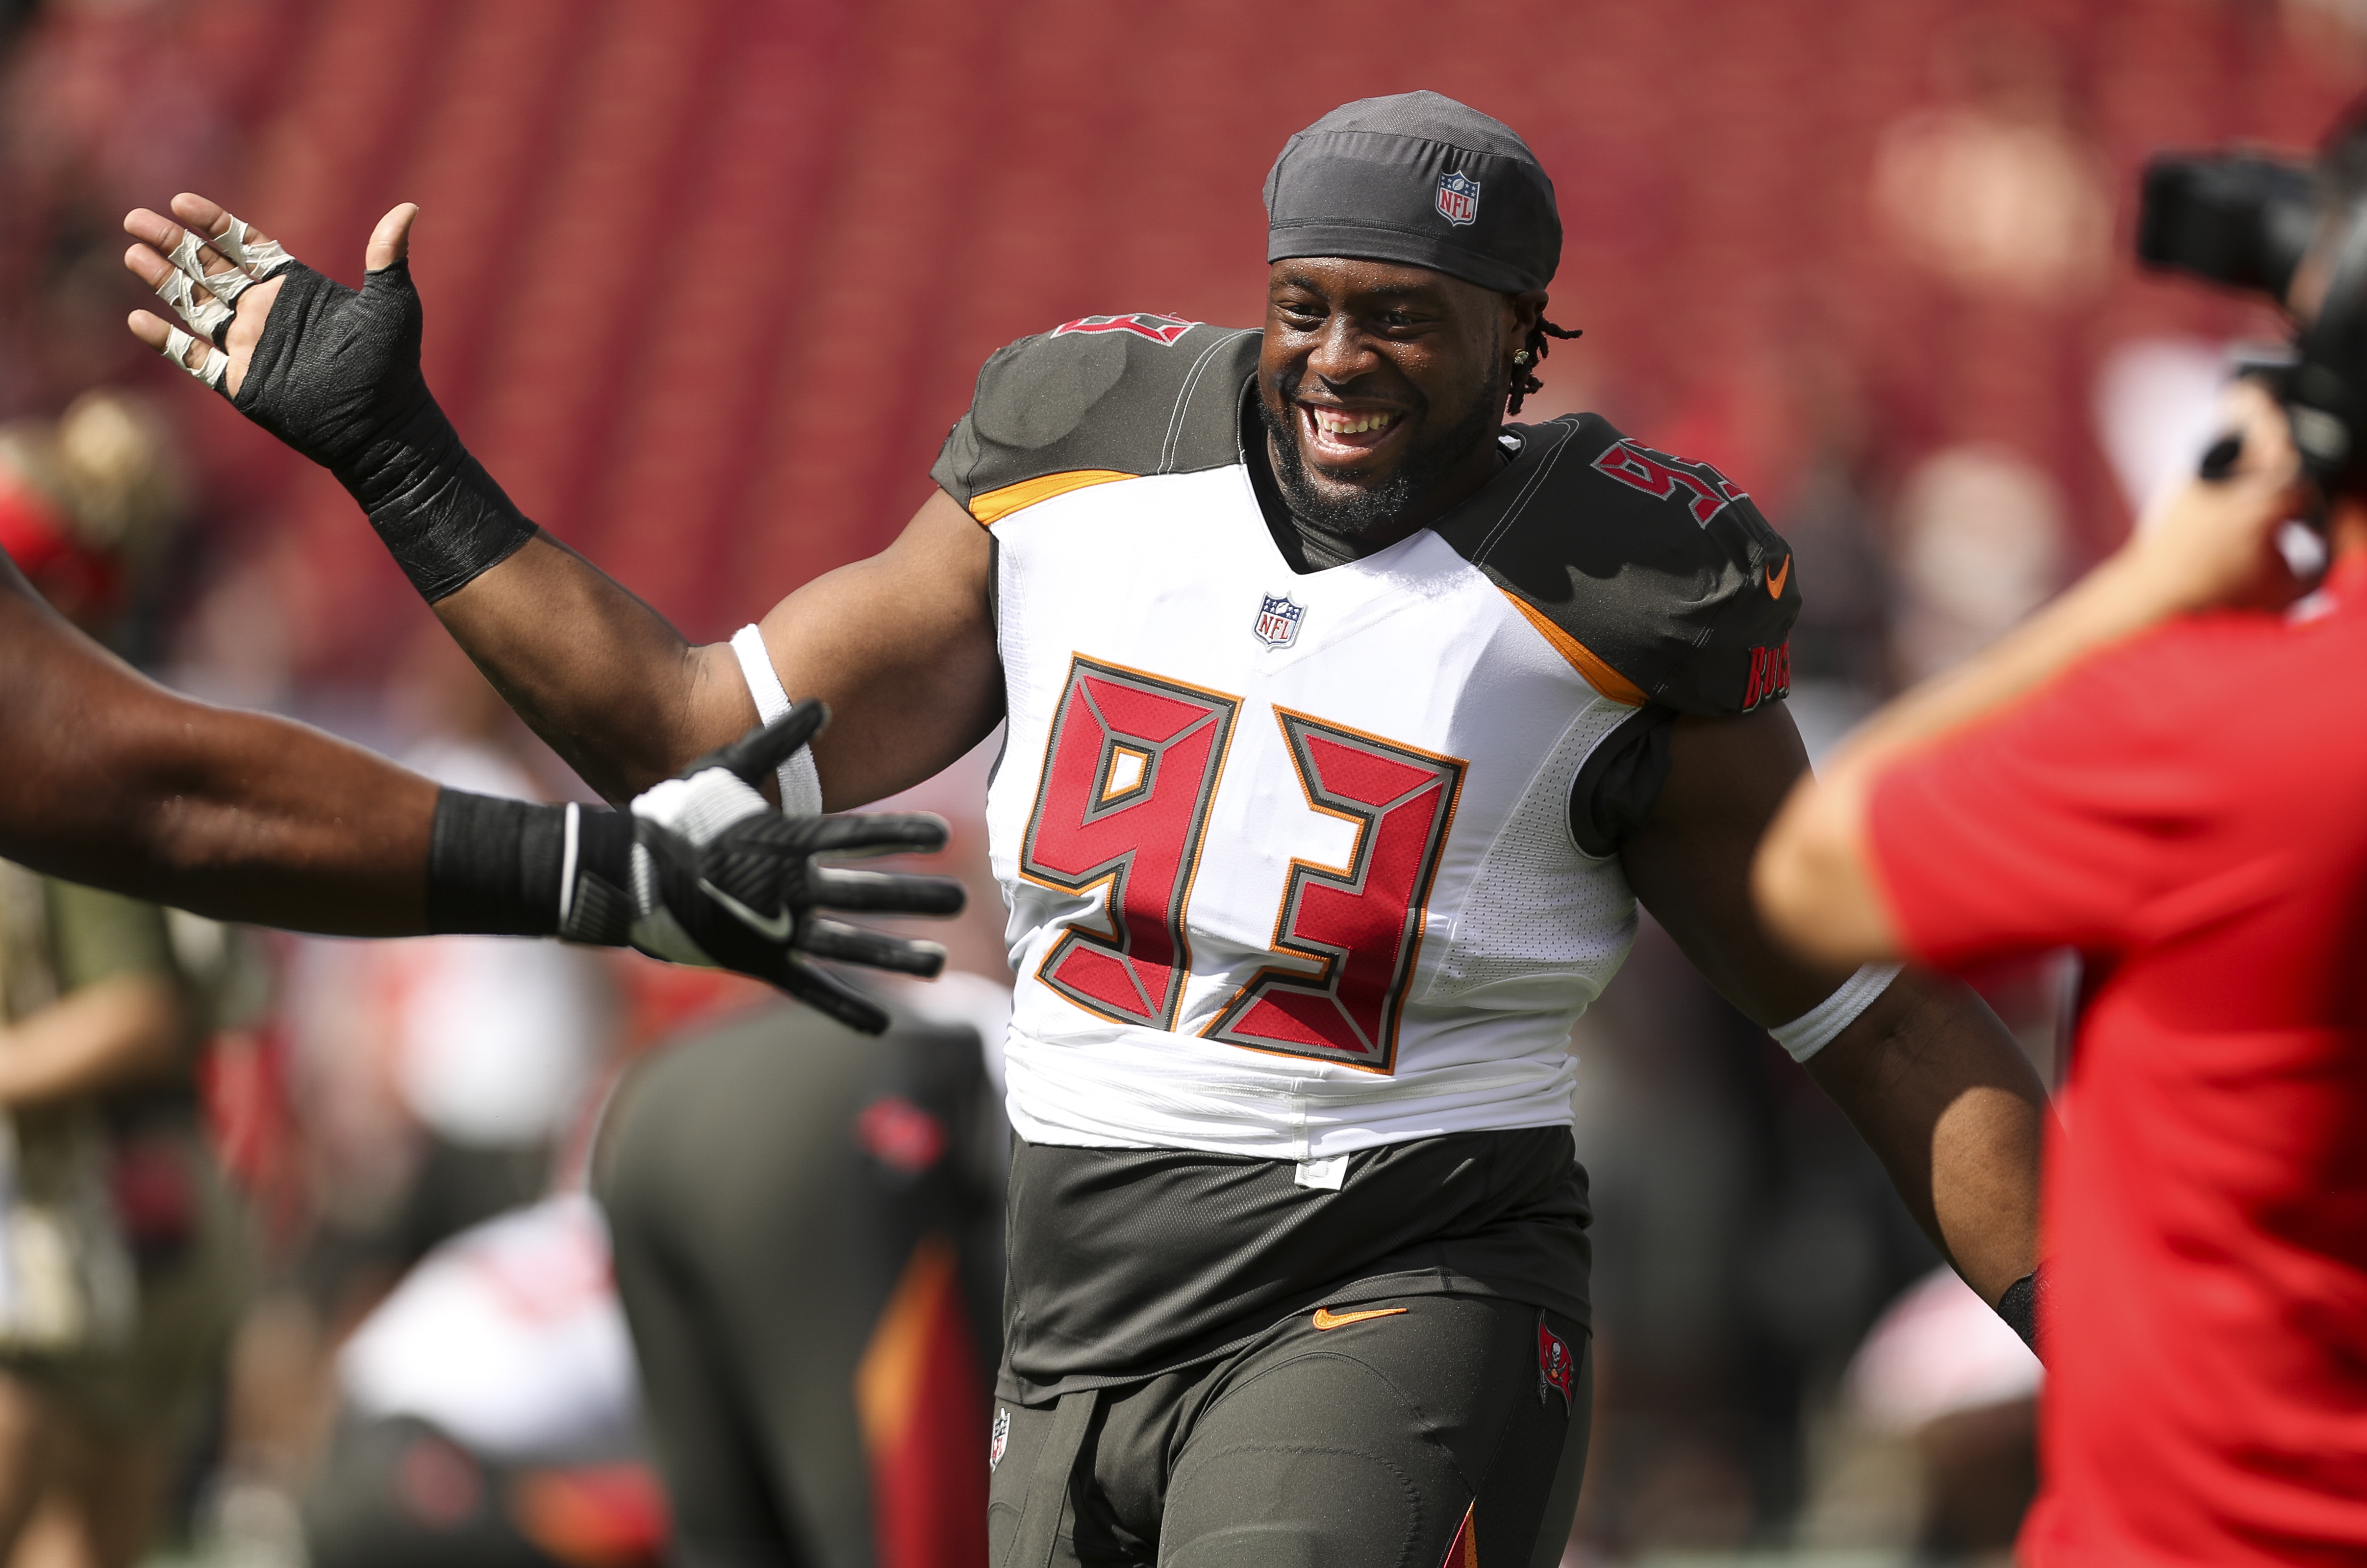 Bleacher Report: Gerald McCoy listed as most likely to be